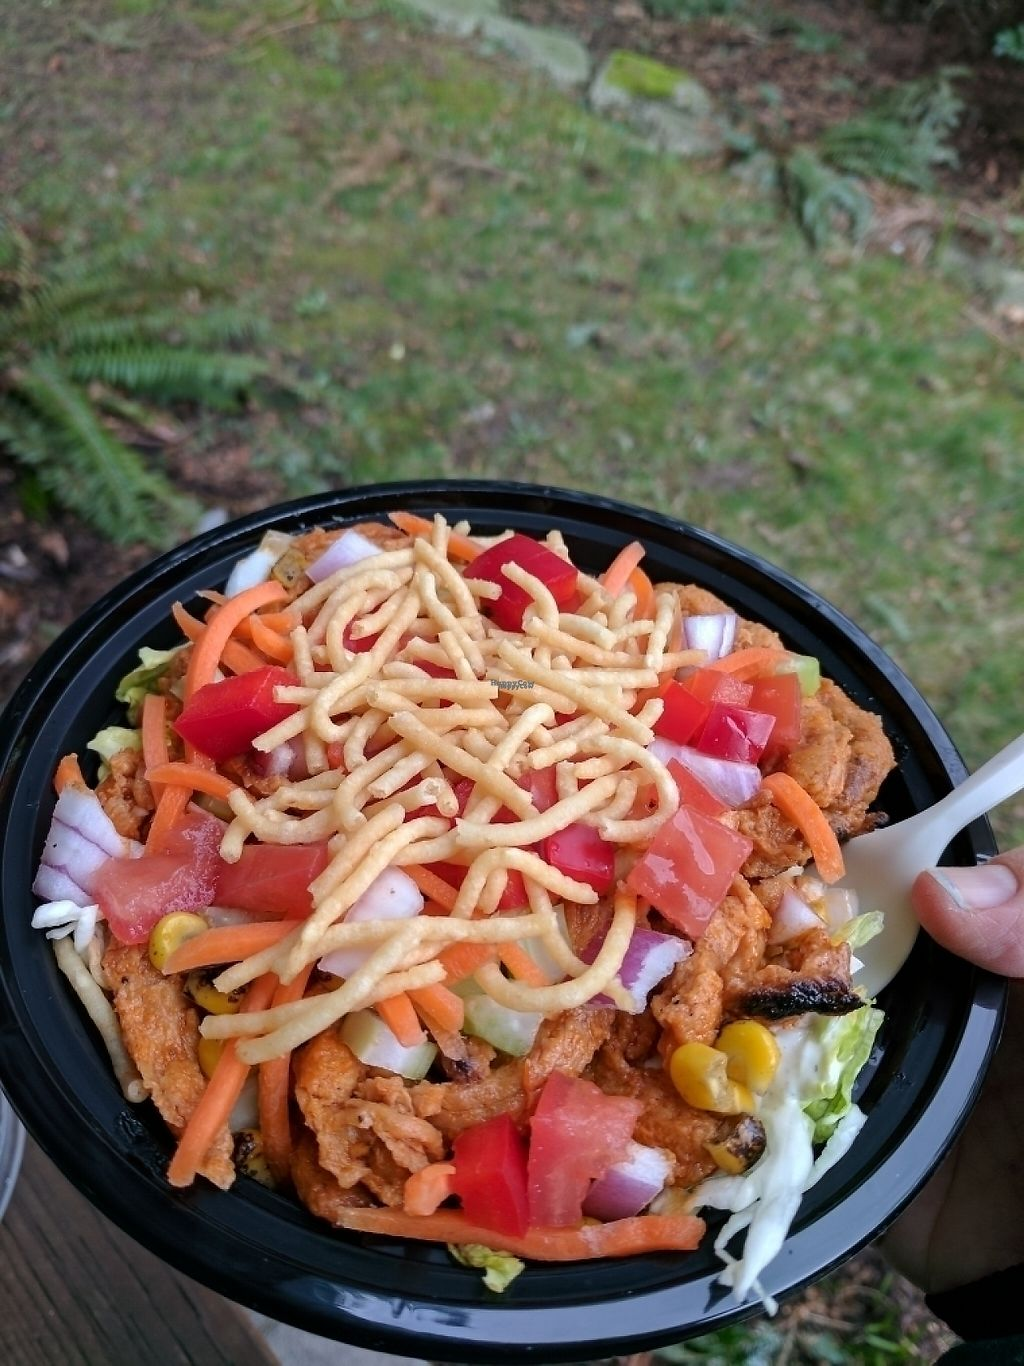 "Photo of Fatsquatch PDX - Food Cart  by <a href=""/members/profile/katypine"">katypine</a> <br/>Erie salad: buffalo soy curls, grilled corn, onion, tomato, carrot, crunchy things  <br/> March 2, 2017  - <a href='/contact/abuse/image/87094/231958'>Report</a>"